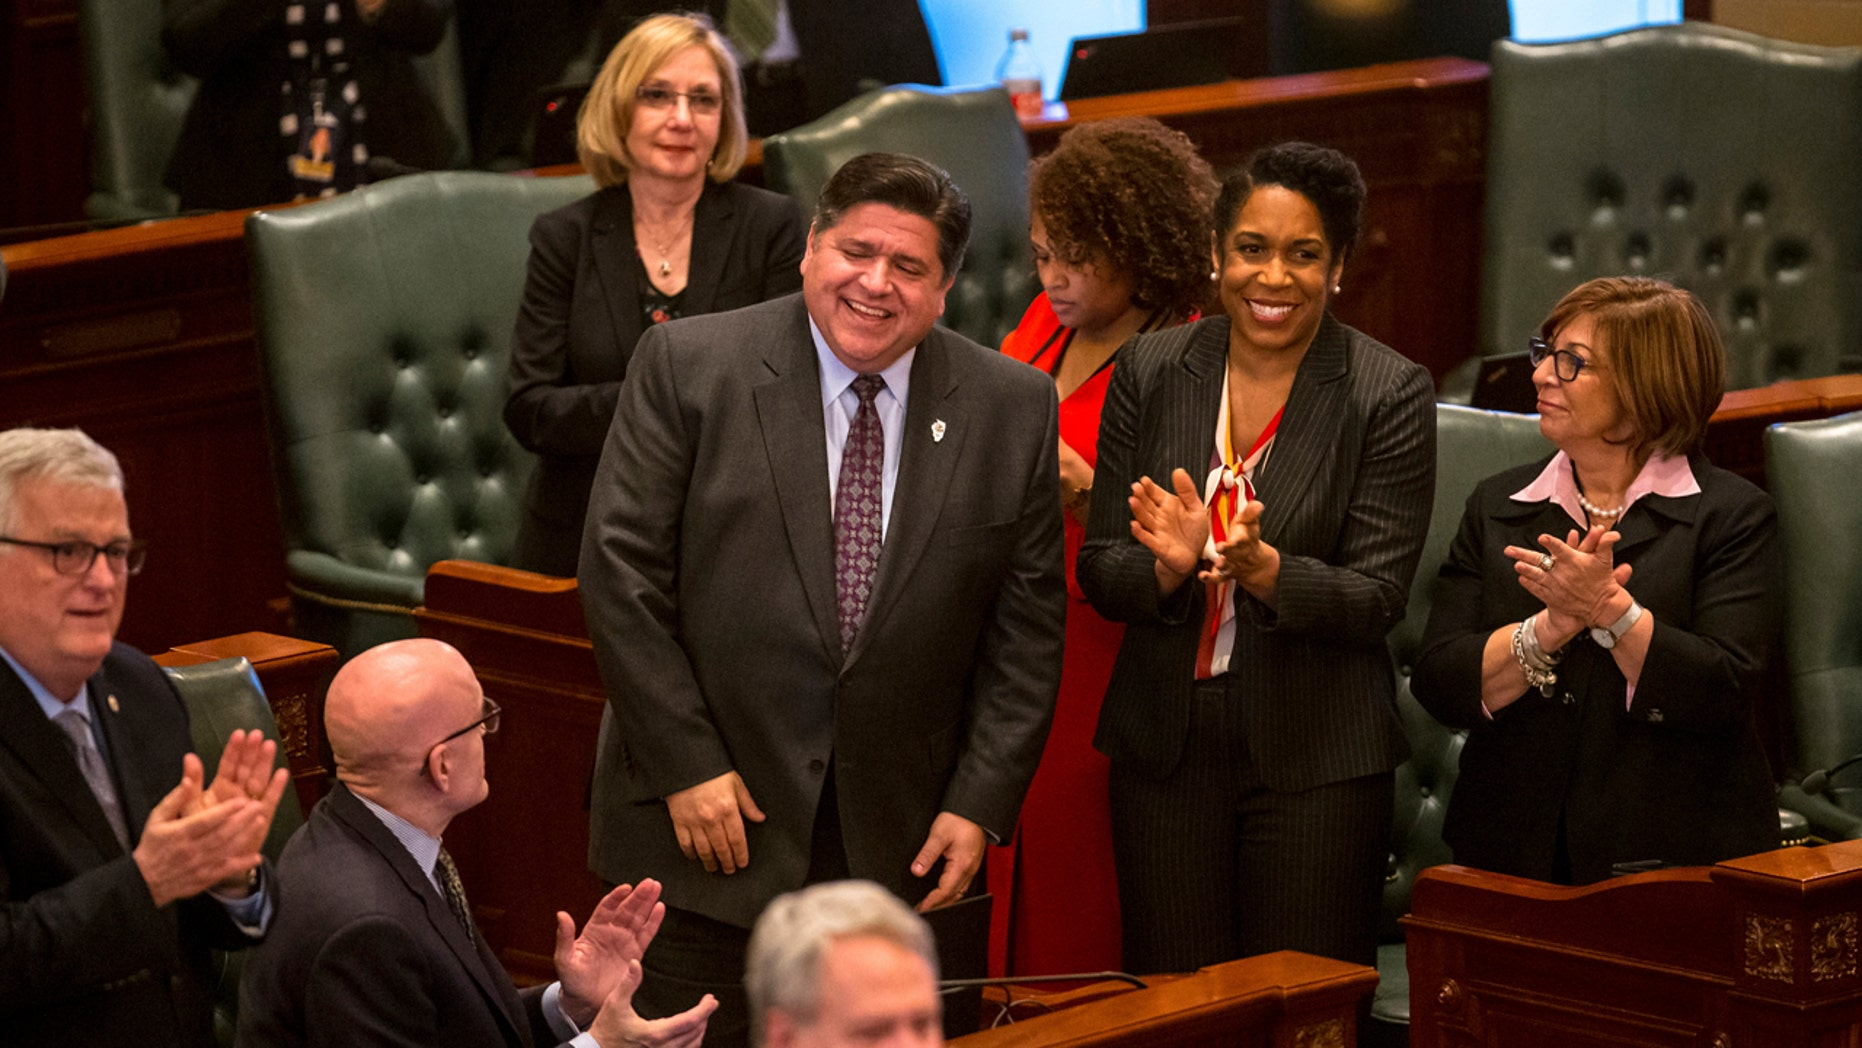 Illinois Gov. J.B. Pritzker, left, and Illinois Lt. Gov. Juliana Stratton, right, are acknowledged on the House floor at the Illinois State Capitol, Thursday, Feb. 14, 2019, in Springfield, Ill. Illinois legislators moved quickly to deliver one of Pritzker's top campaign promises, a gradual hike in the statewide minimum wage from $8.25 to $15 an hour, more than double the pay floor that most of its Midwestern neighbors require. (Justin L. Fowler/The State Journal-Register via AP)